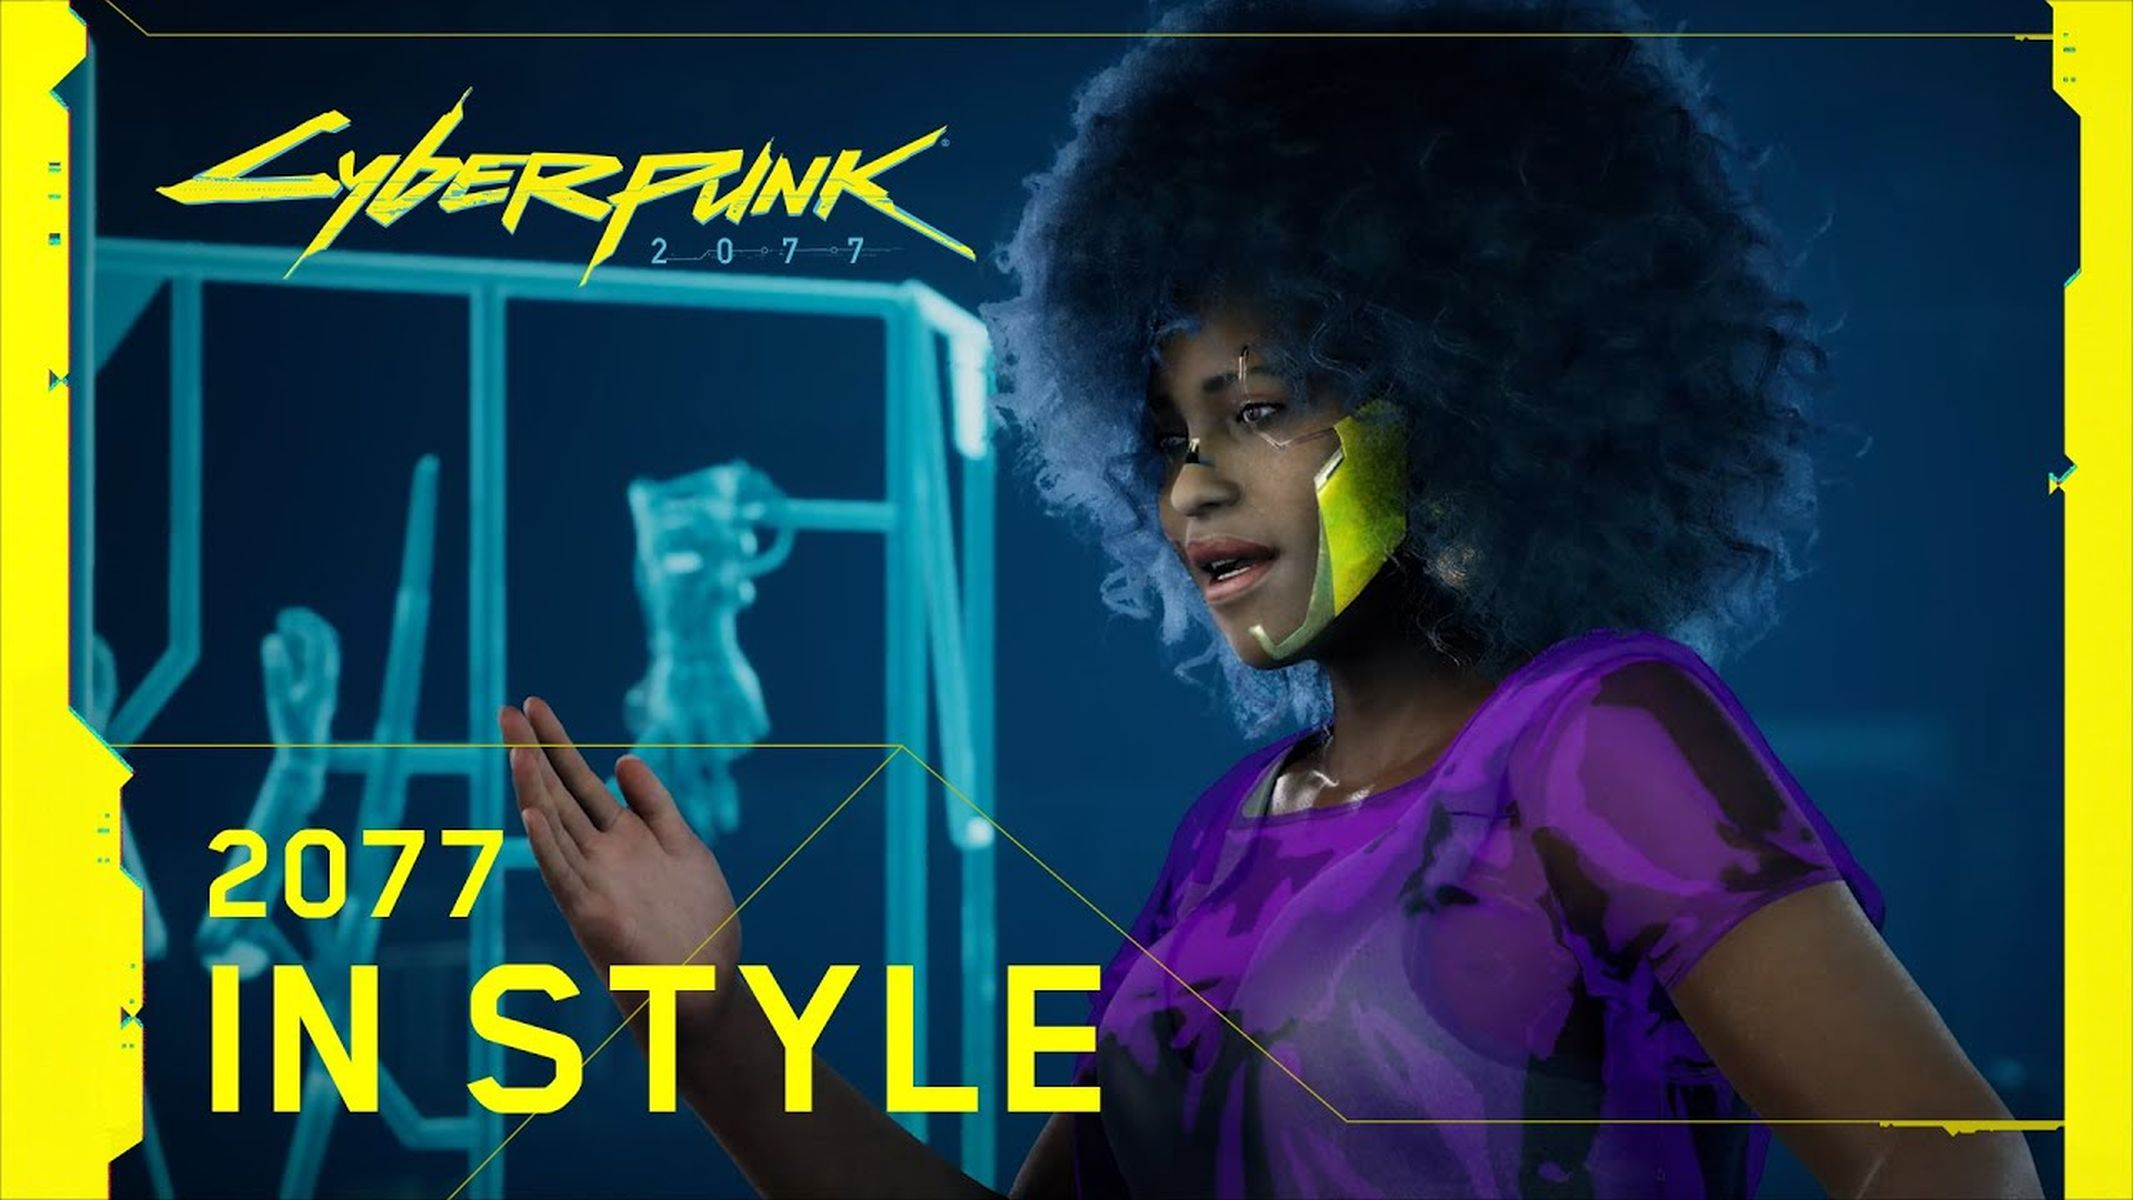 Cyberpunk 2077 Clothing and Style